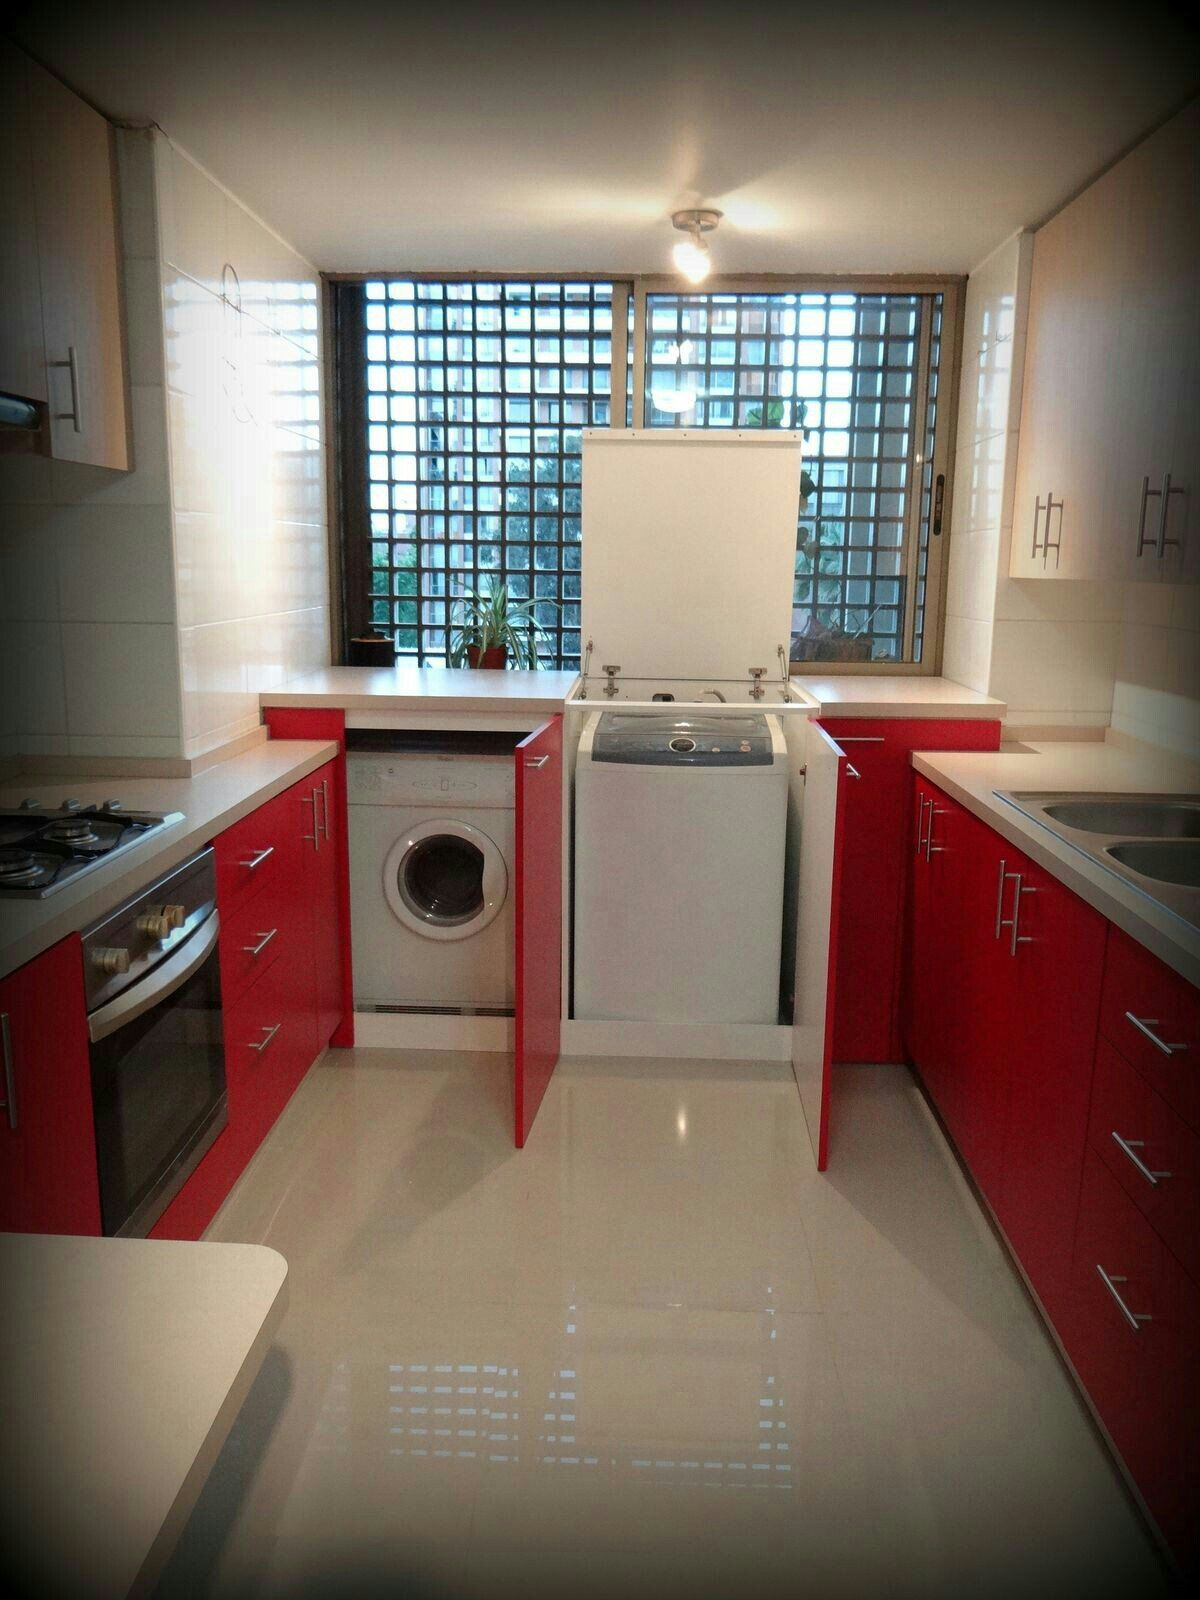 Zona de lavanderia laundry nook room design kitchen red cabinets also rustic interior ideas pinterest rh